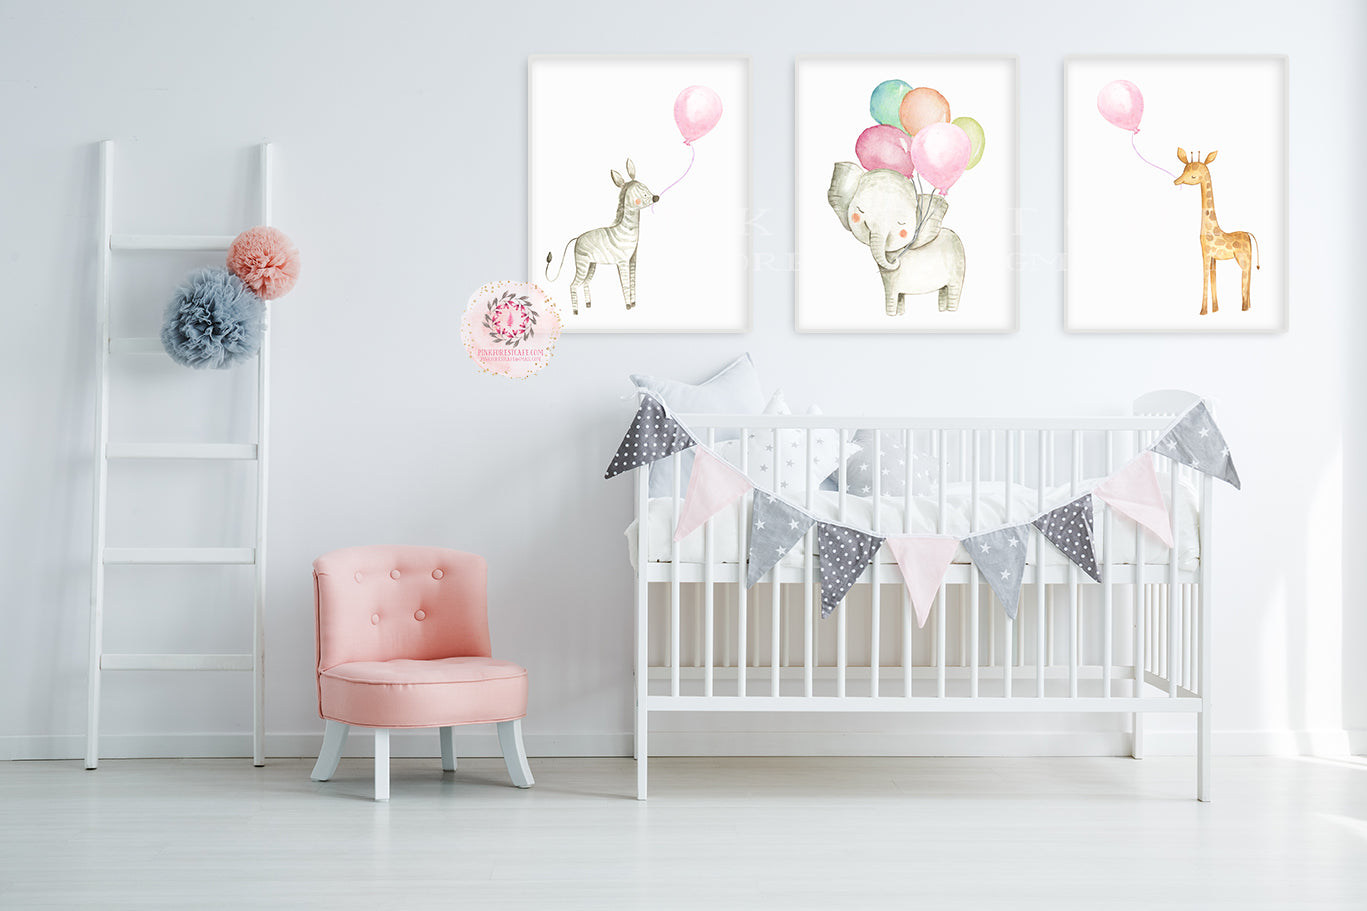 3 Boho Zebra Elephant Giraffe Baby Girl Nursery Wall Art Print Balloons Ethereal Whimsical Zoo Safari Animal Set Lot Prints Printable Decor